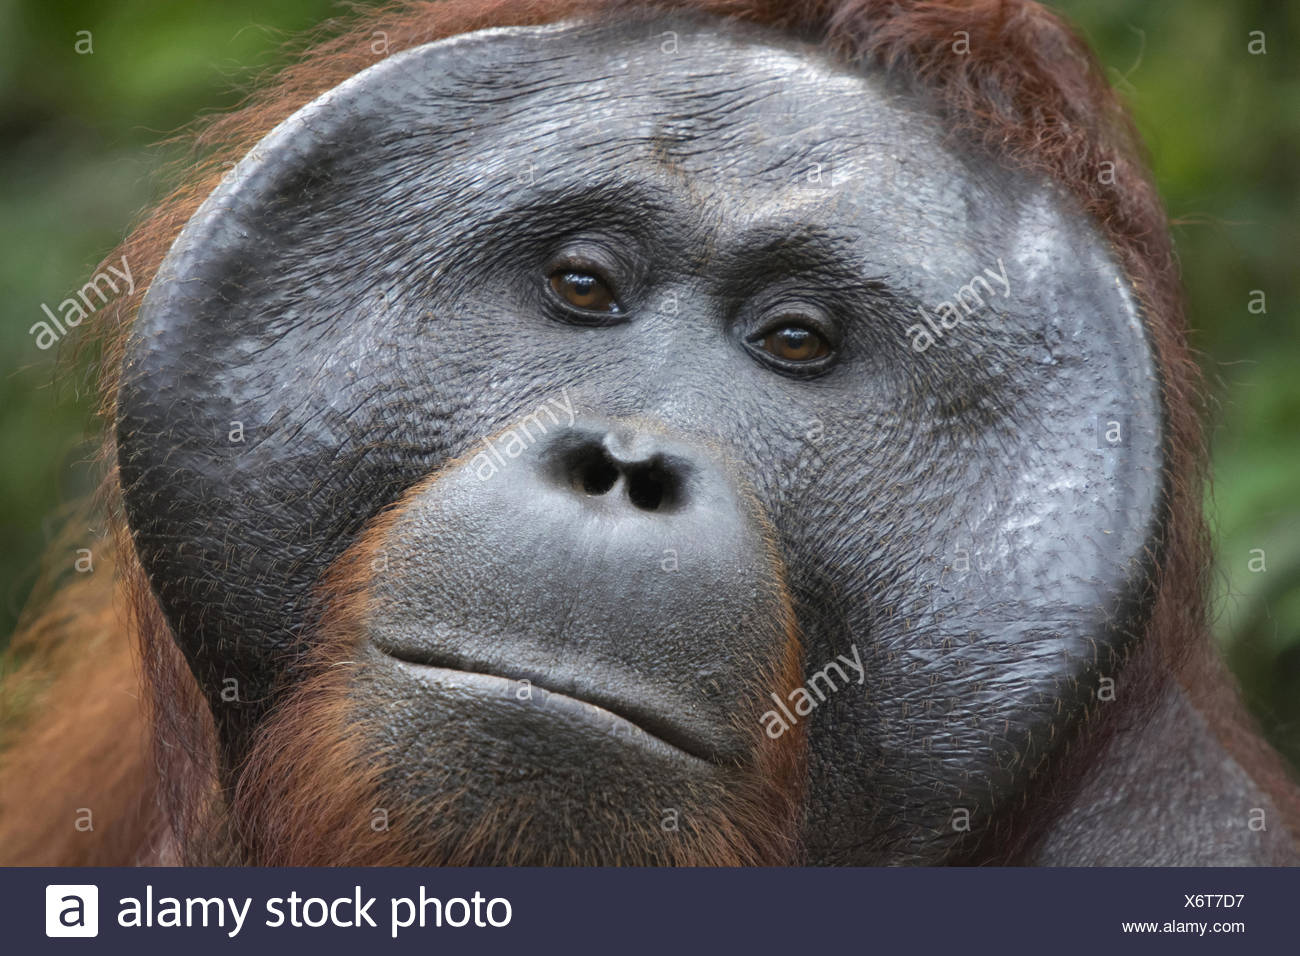 Orangutan, Indonesia. Native to Indonesia and Malaysia, orangutans are currently found in only the rainforests of Borneo and Sumatra - Stock Image